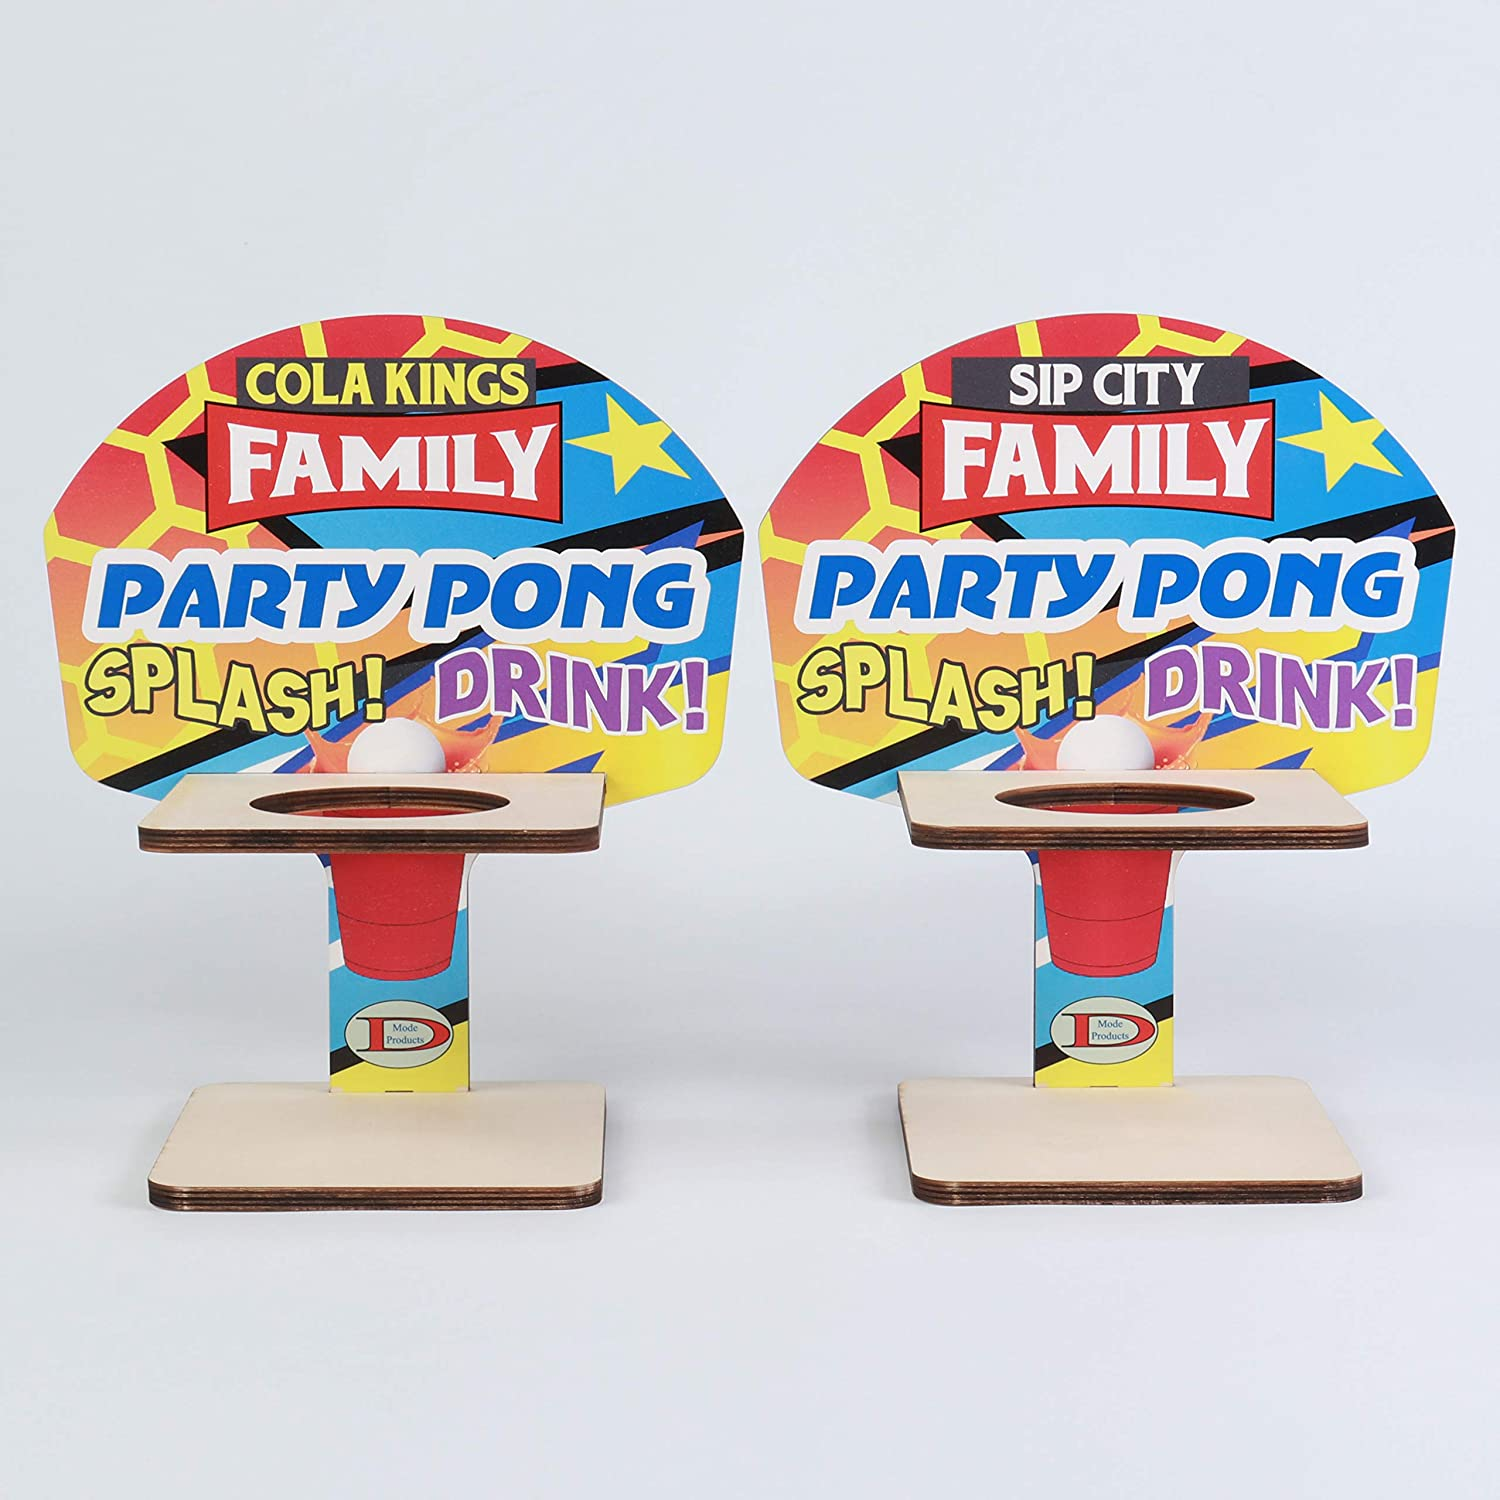 DMode Products Wooden Party Max 52% OFF Game Set Max 58% OFF Pong for